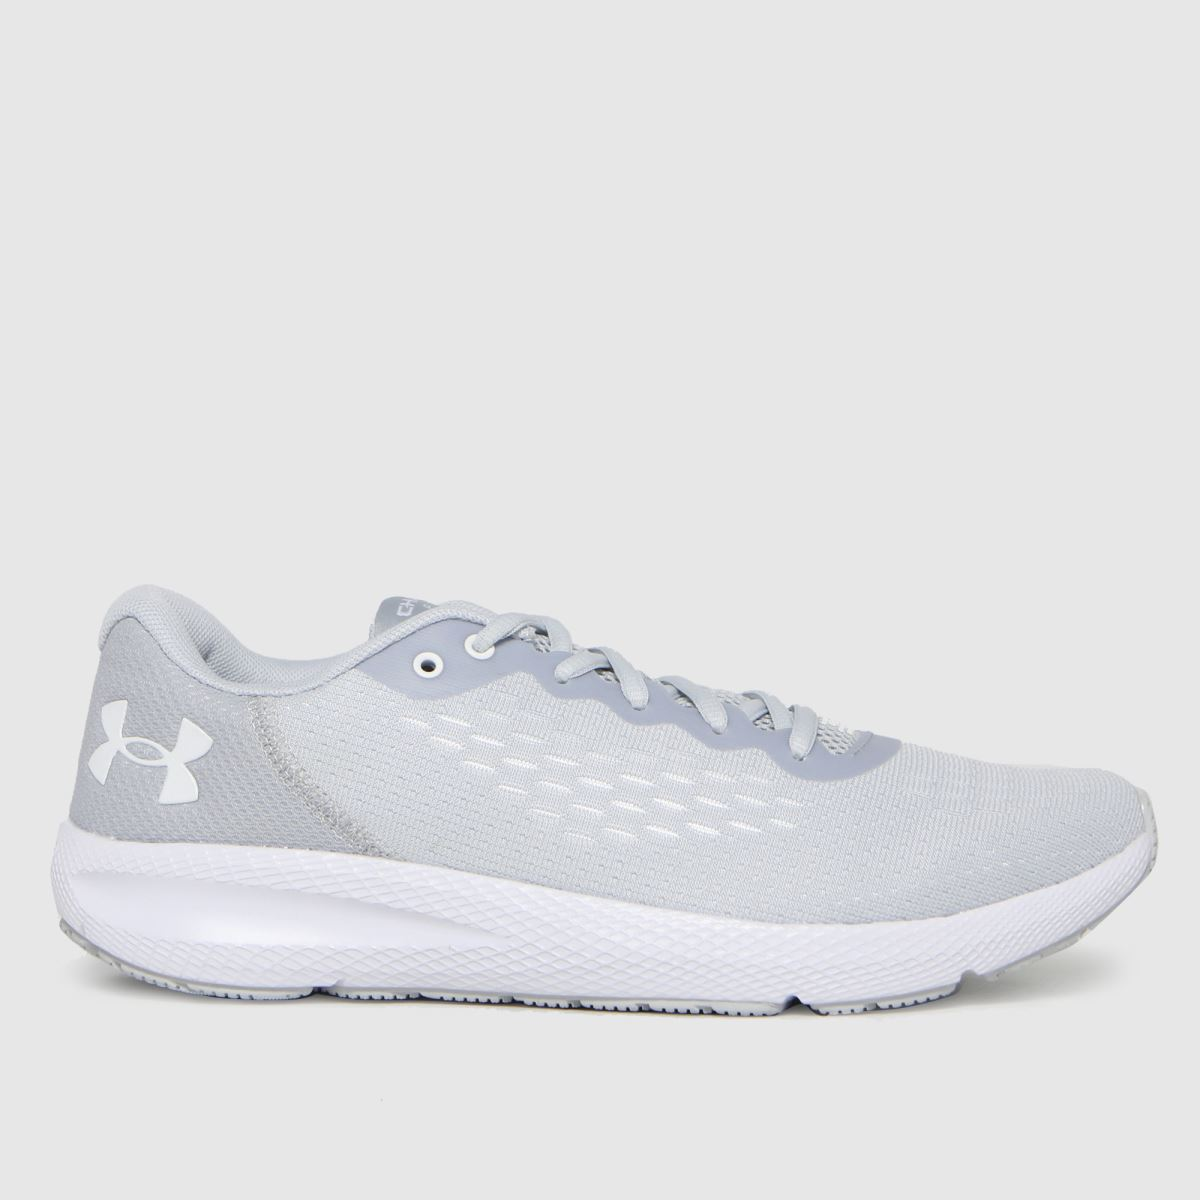 Under Armour Light Grey Charged Pursuit 2 Trainers